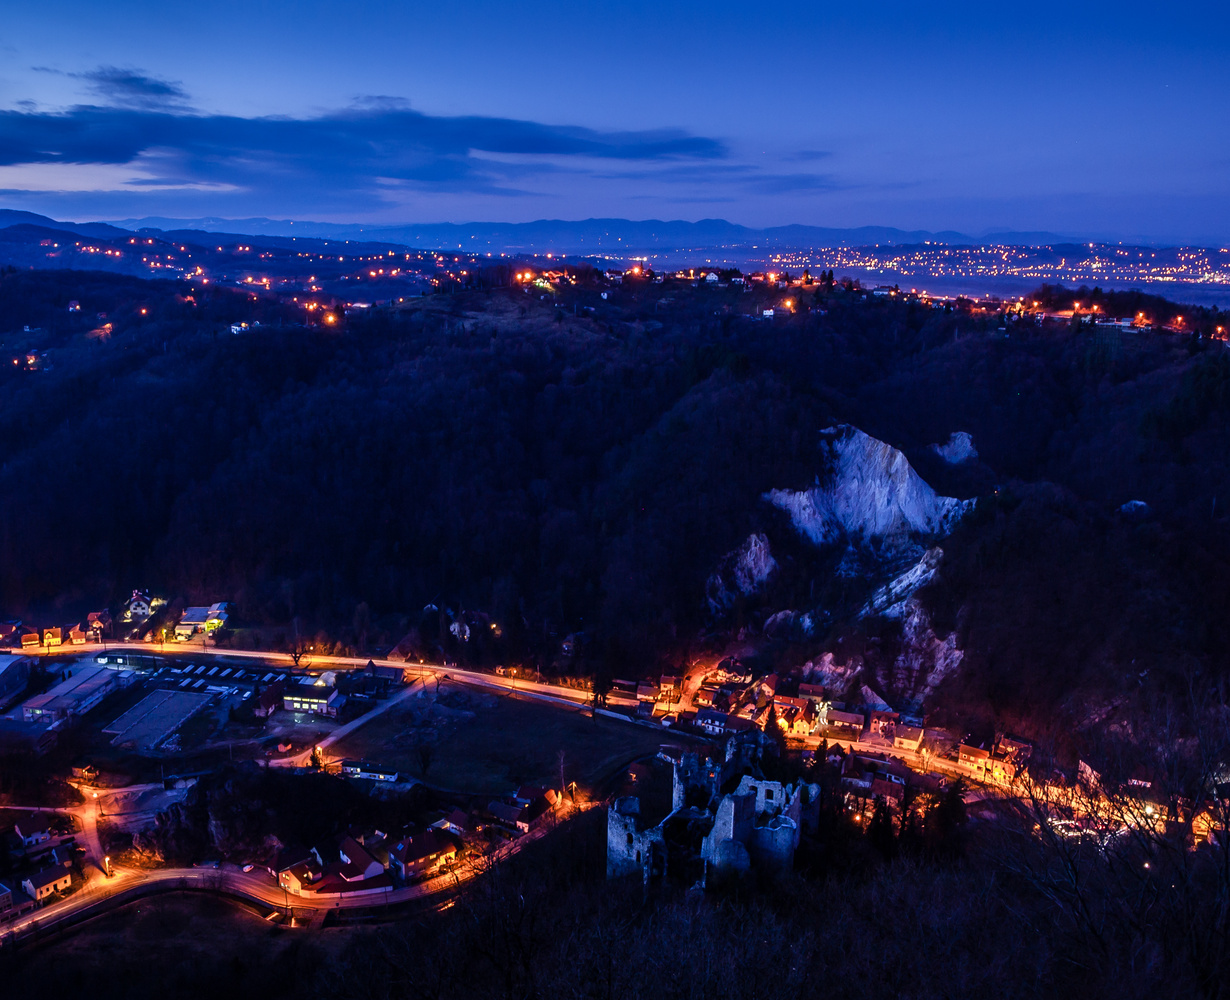 Night view by Tihomir Dubic